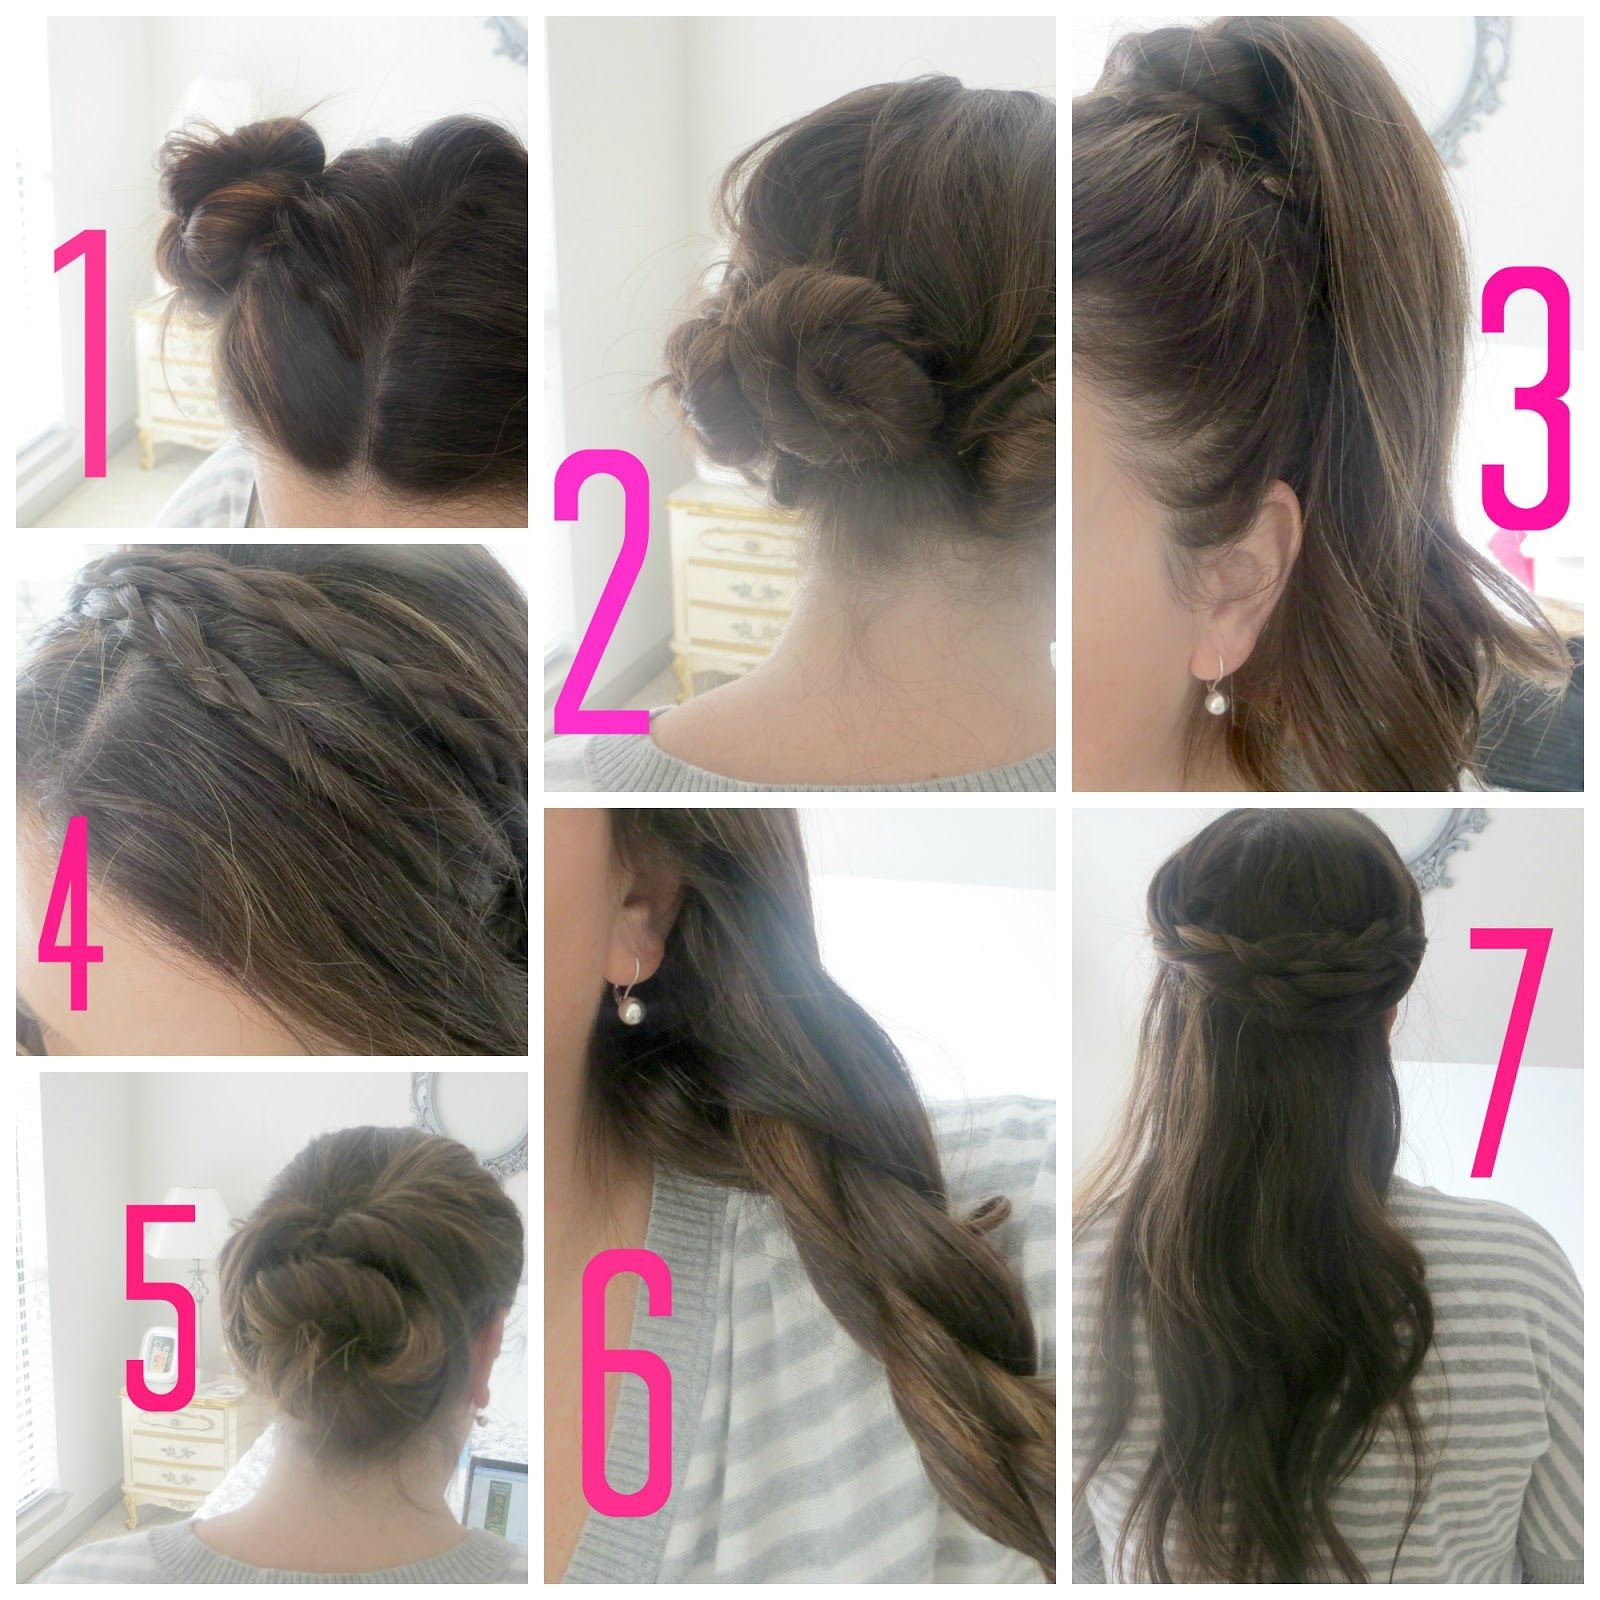 Stunning Quick Hairstyles For School Contemporary Styles & Ideas